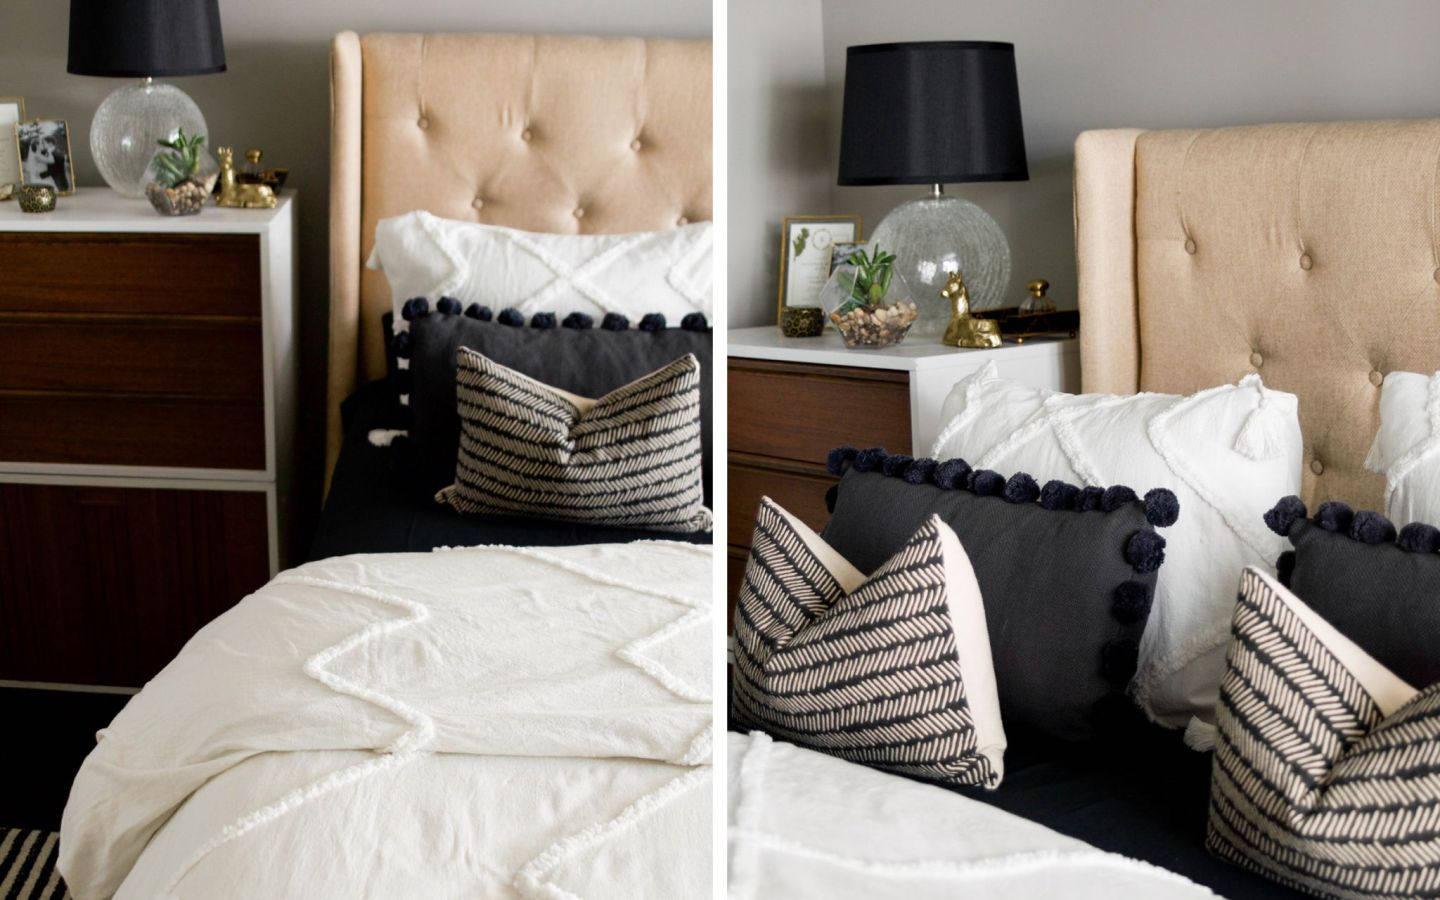 pb teen bedding - pb teen bedding for adults - grown up pottery barn teen bedding - pb teen tufted duvet - black and white pottery barn teen bedding